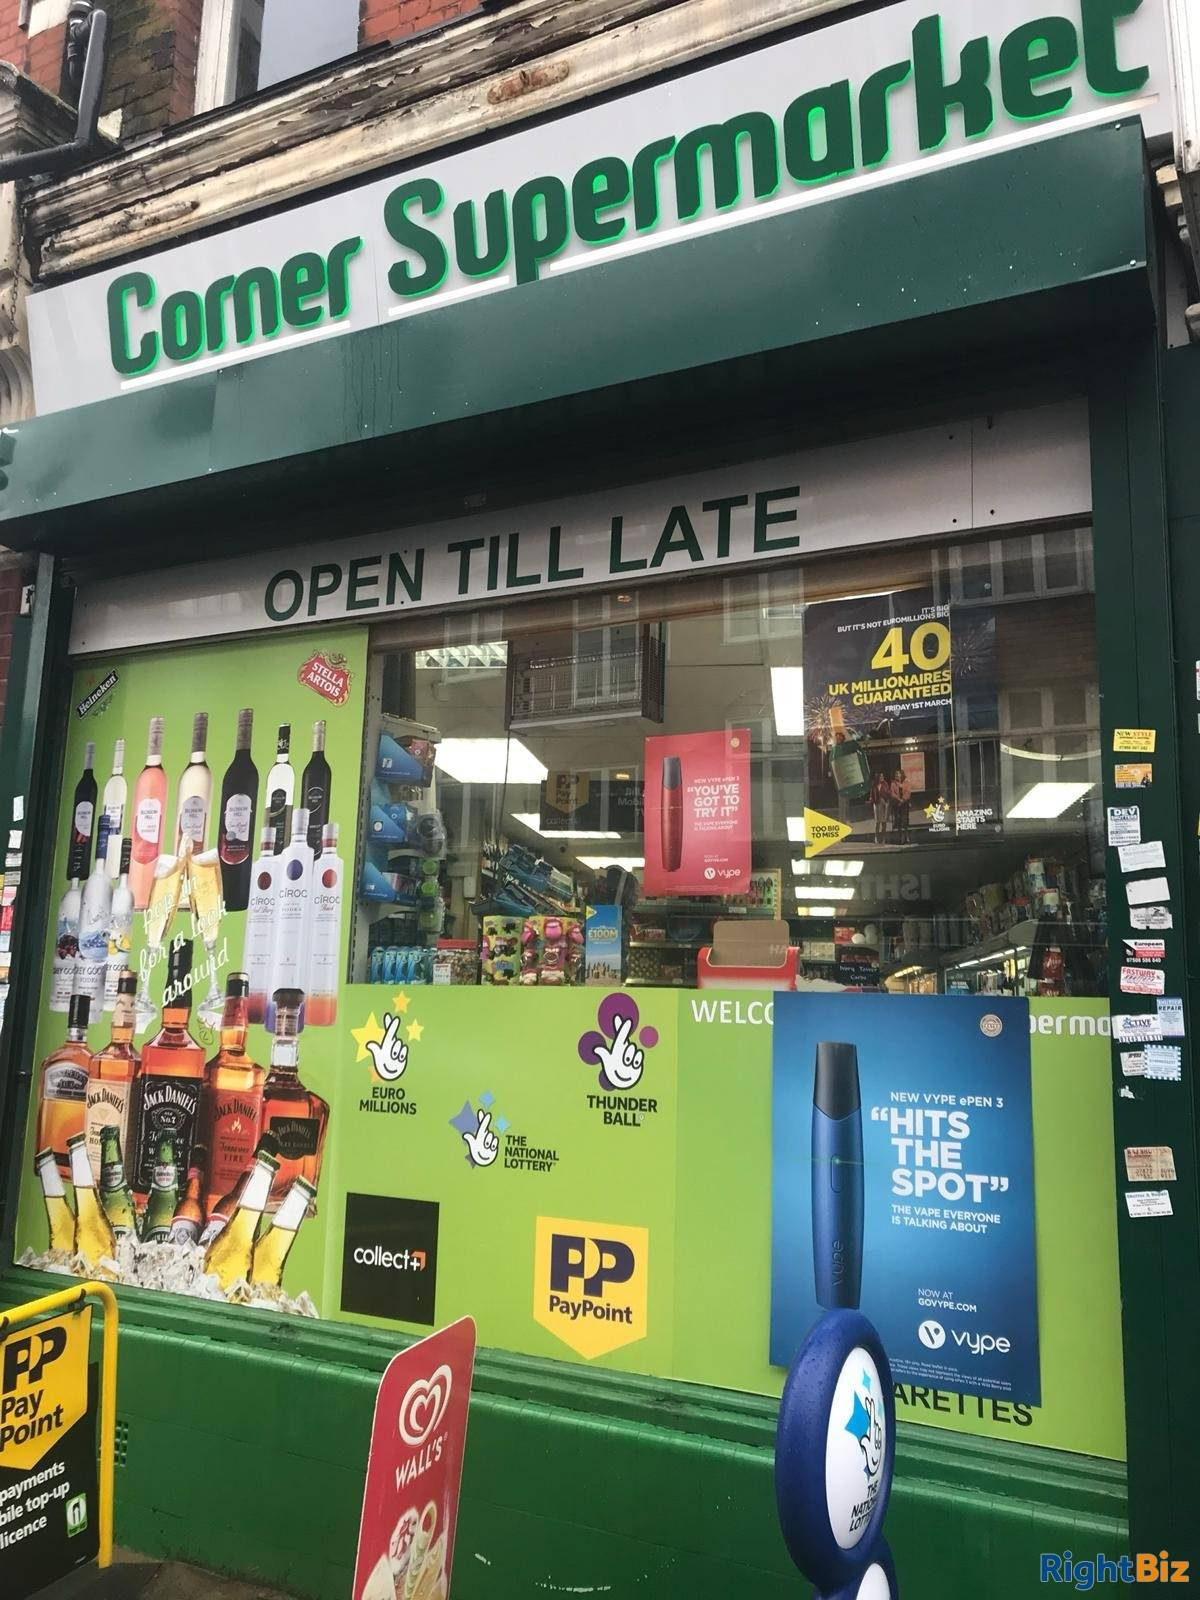 Convenient Store For sale in London Leasehold  - Image 11